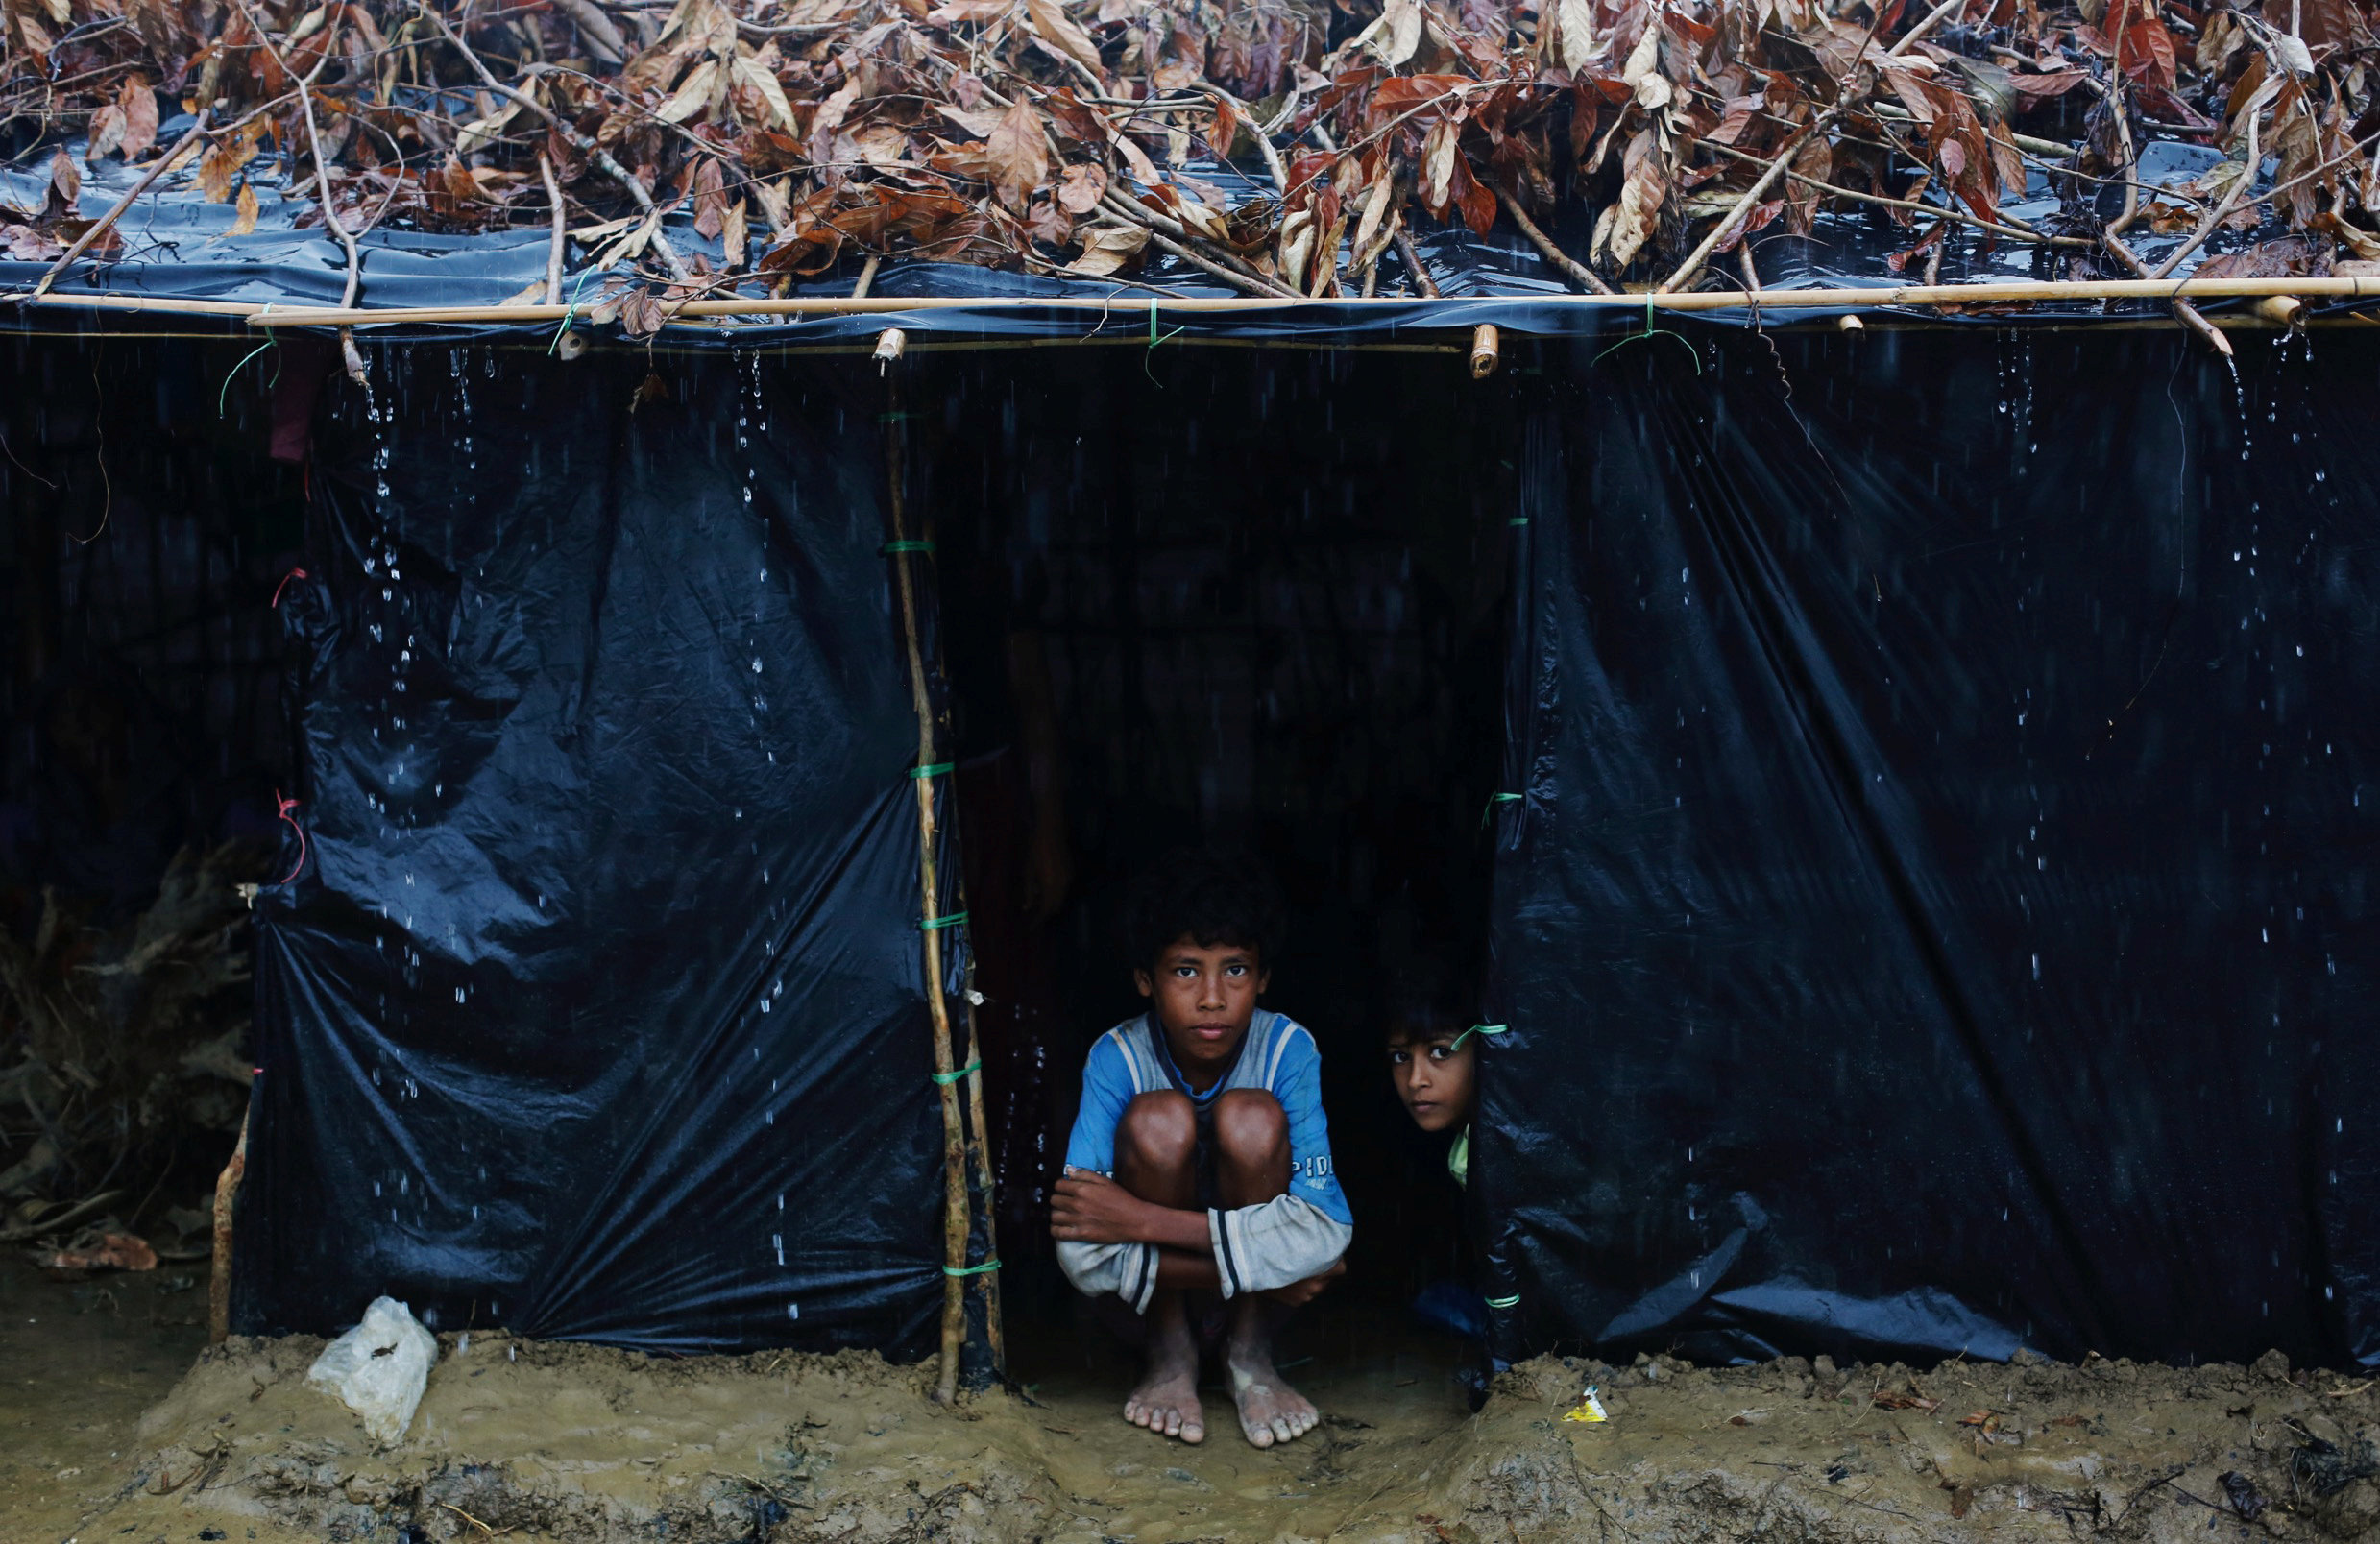 Rohingya refugees sit inside their temporary shelter as it rains at a camp in Cox's Bazar, Bangladesh September 19, 2017. REUTERS/Danish Siddiqui